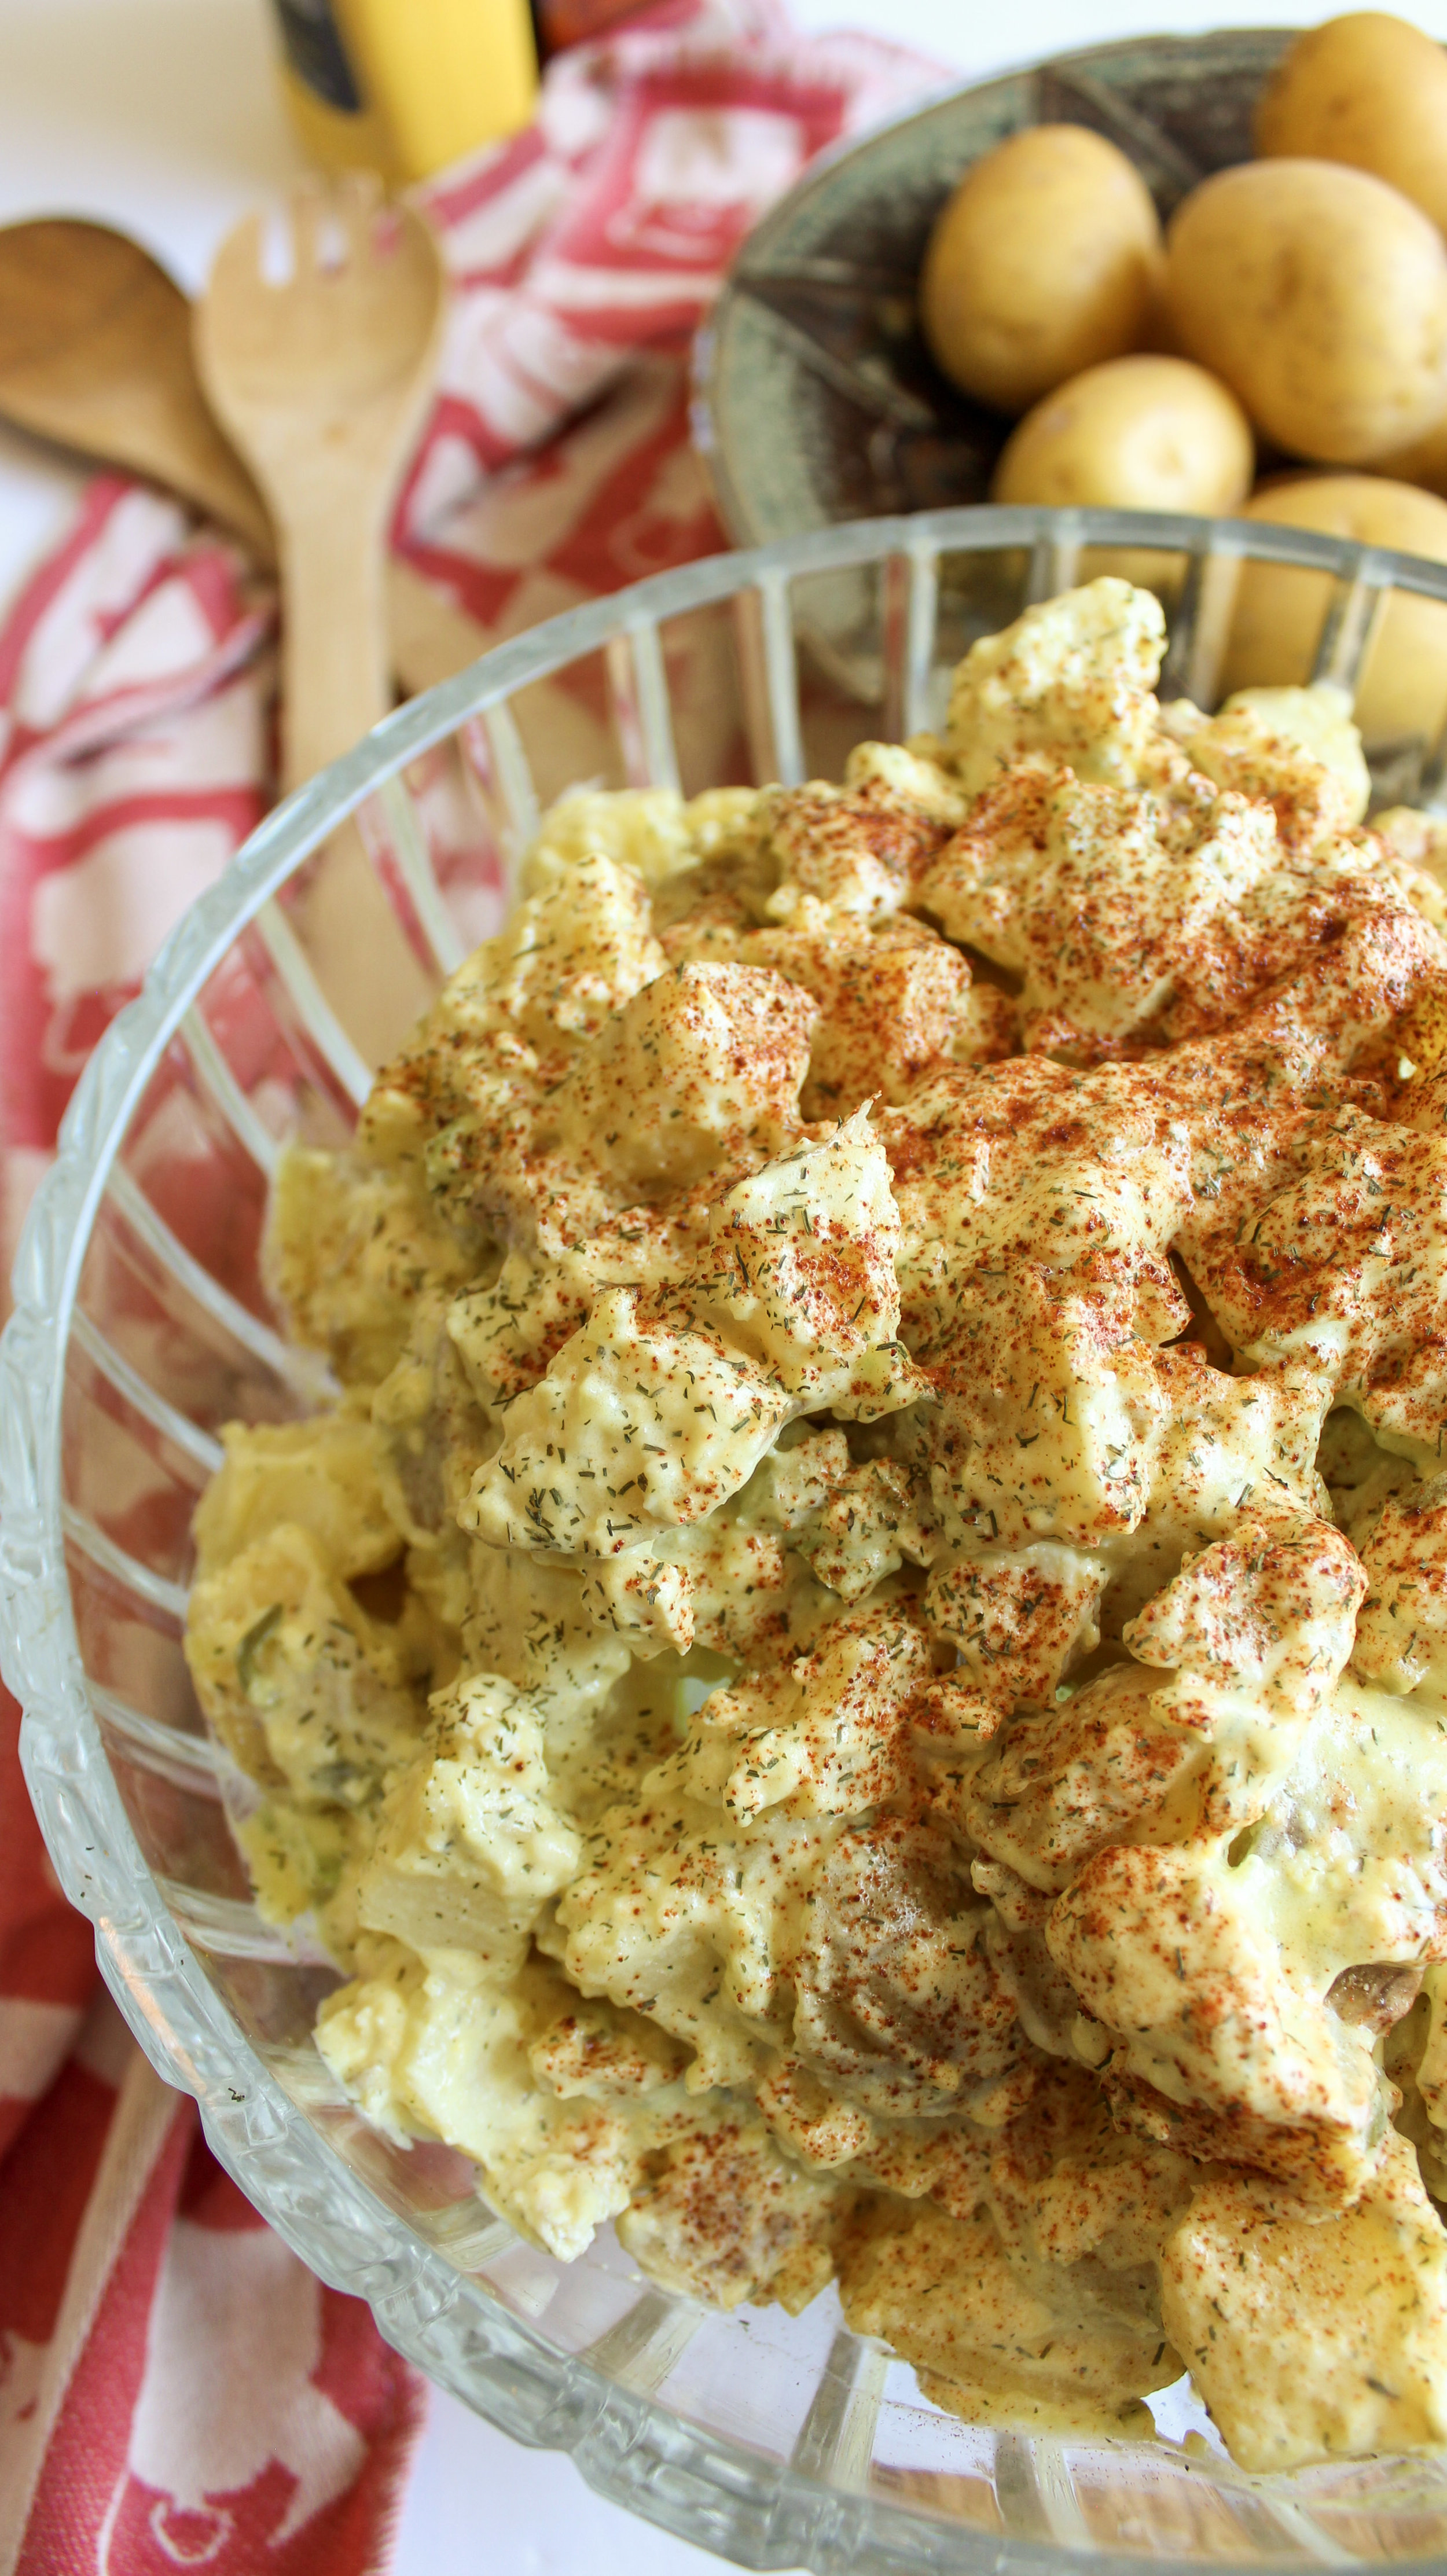 Panicking about what to bring to a BBQ as a vegan? Never fear! This super simple vegan potato salad is the perfect dish to bring and share. No one will even guess that it's vegan. Creamy, delicious and easy vegan potato salad. Vegan BBQ food. #bbq #potatosalad #veganbbq #veganpotatosalad www.musicandmunchiesblog.com